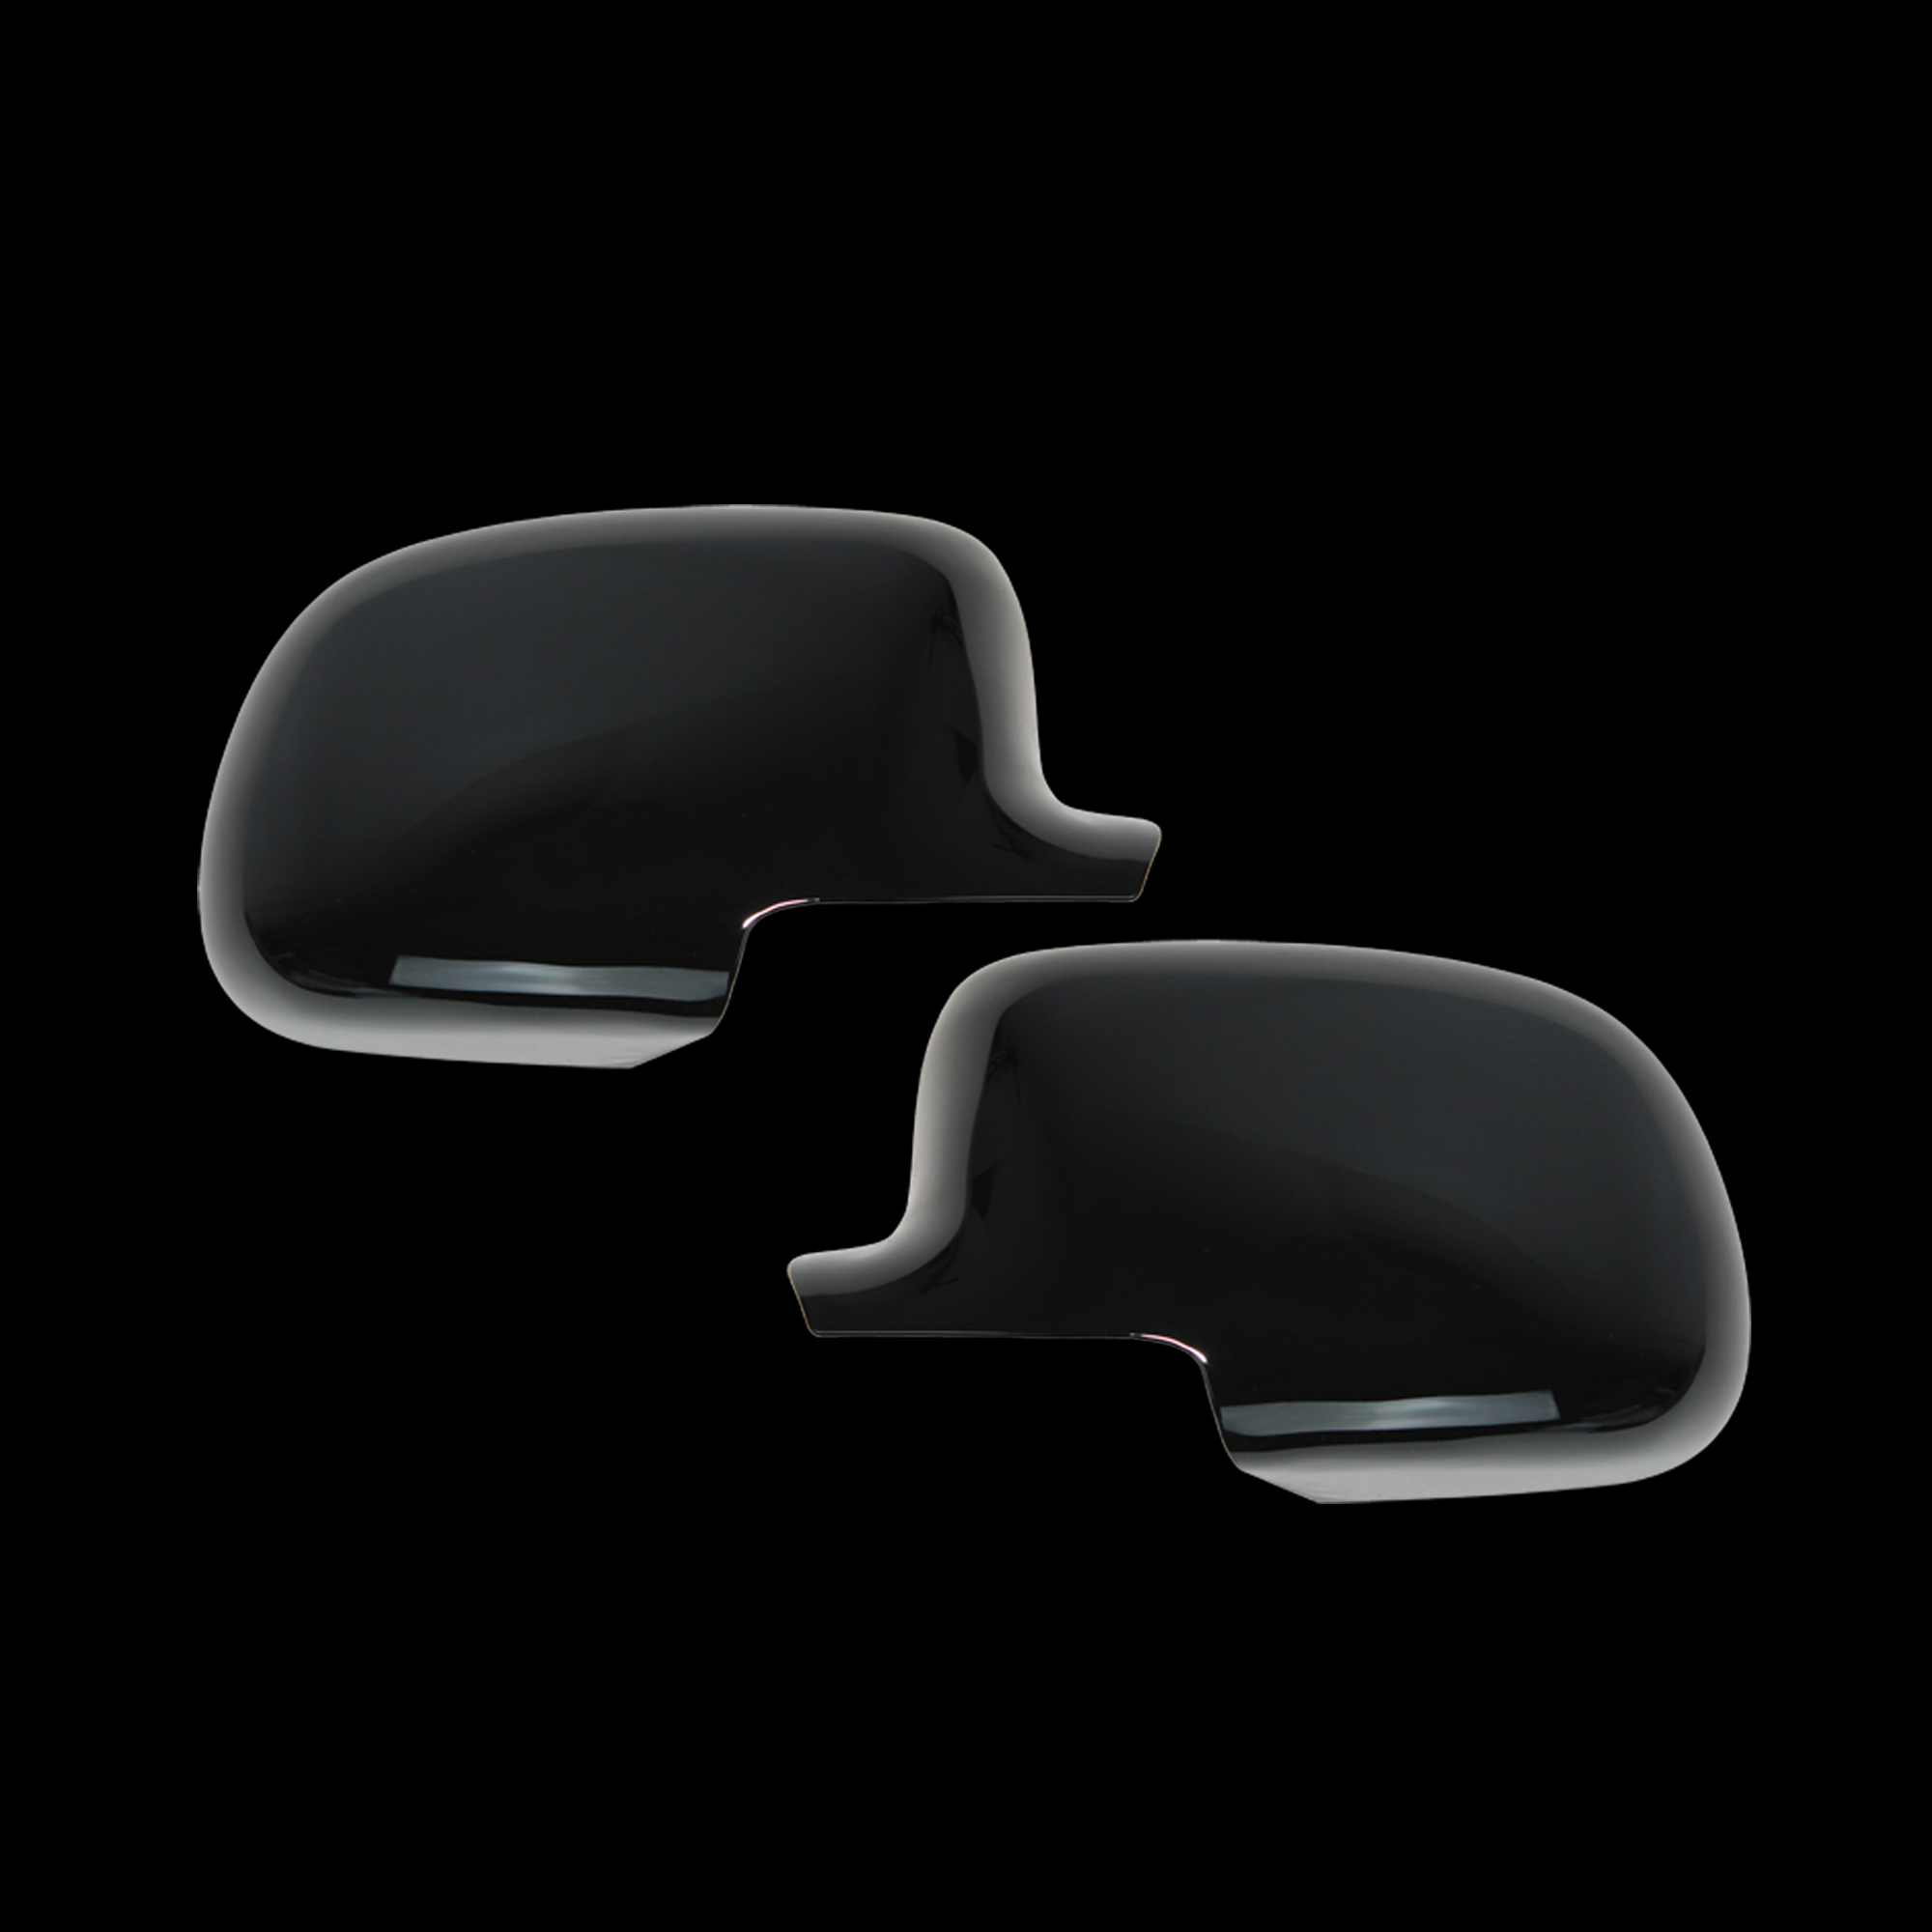 FOR CHEVY TAHOE 2000 01 02 03 04 05 2006 CHROME MIRROR CAP COVERS